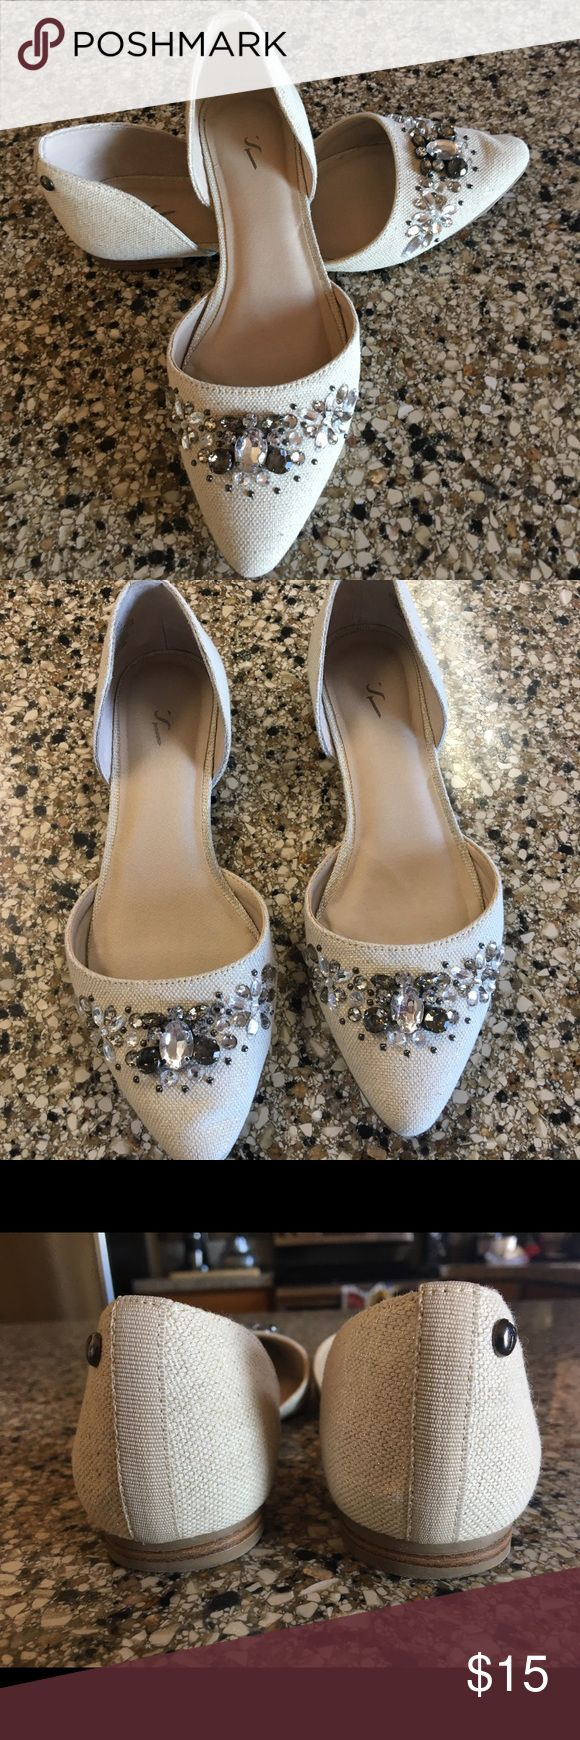 Simply Vera Jeweled Cream Flats - size 6 Great pre-loved condition embellished flats with no missing stones. Simply Vera Vera Wang Shoes Flats & Loafers